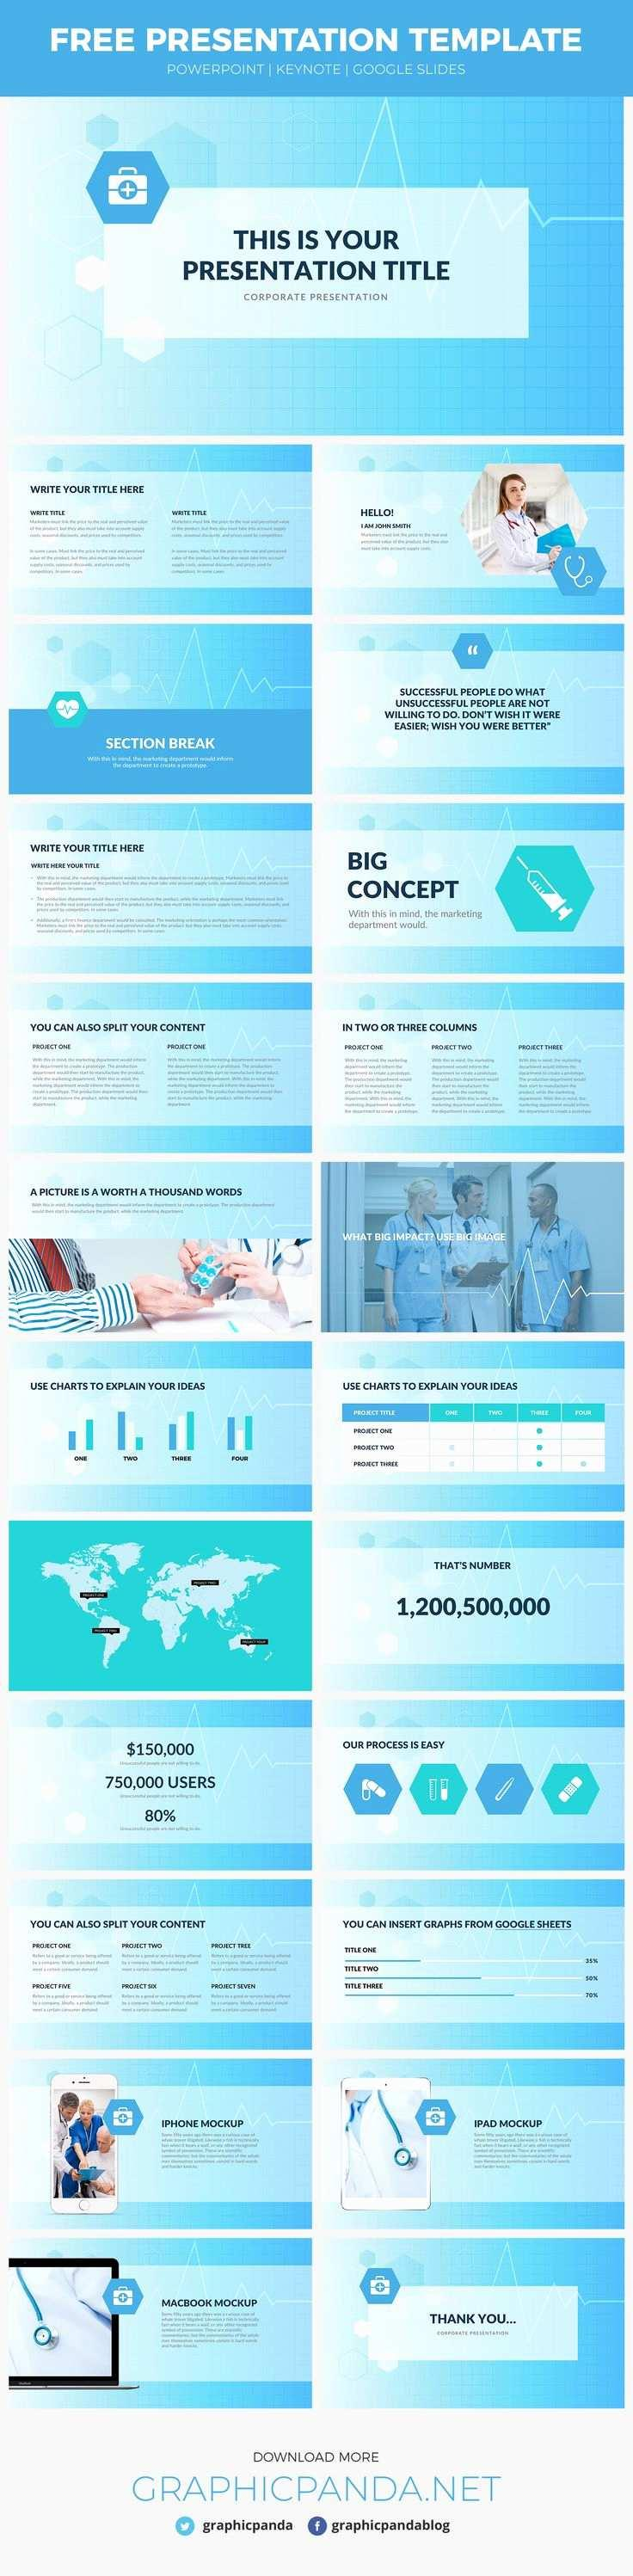 Animated Medical Powerpoint Presentation Templates Free Download